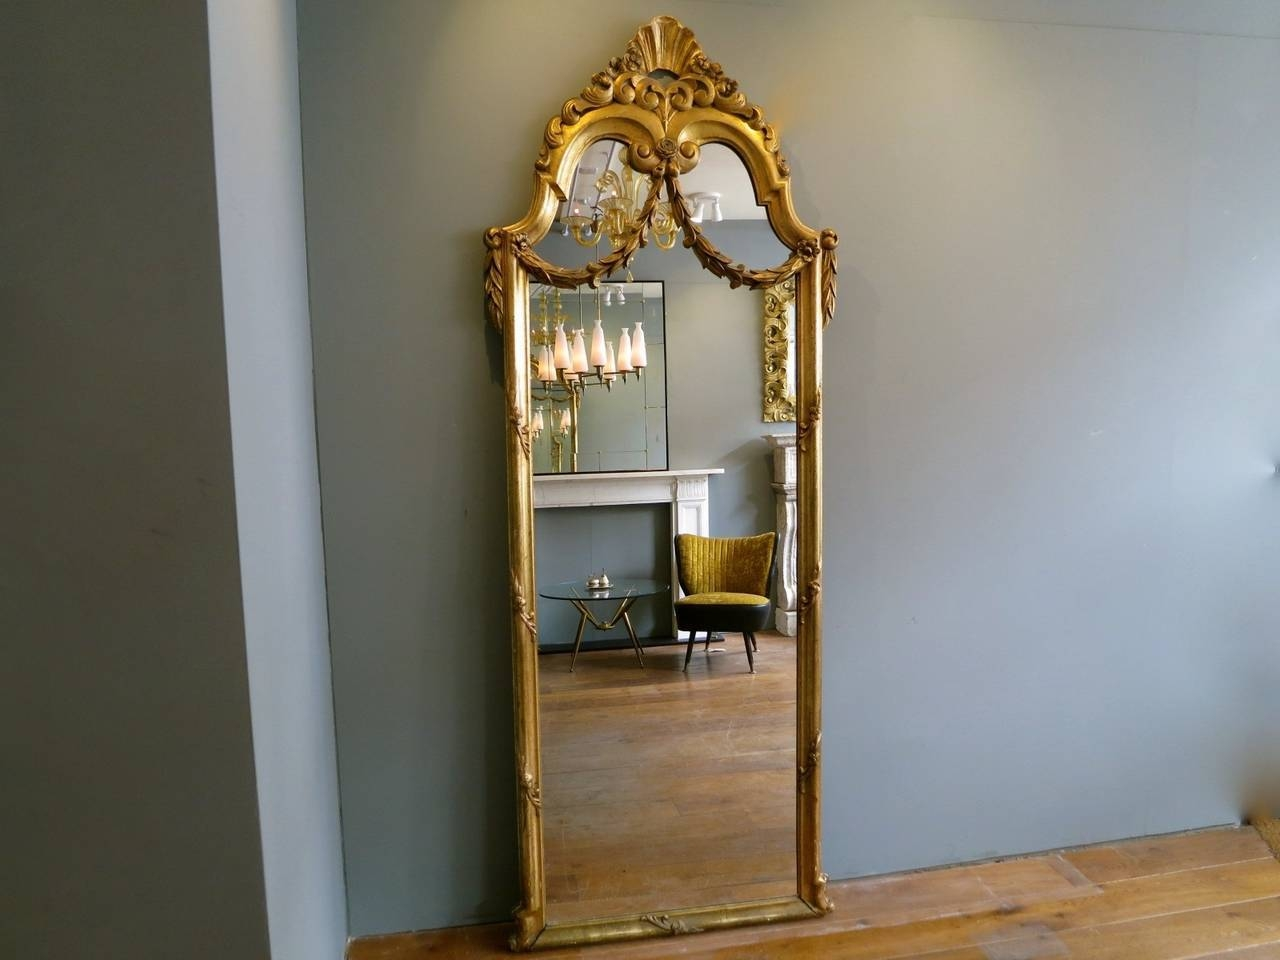 Antique French Gold Gilt Floor Standing Mirror At 1Stdibs within French Floor Standing Mirrors (Image 15 of 25)